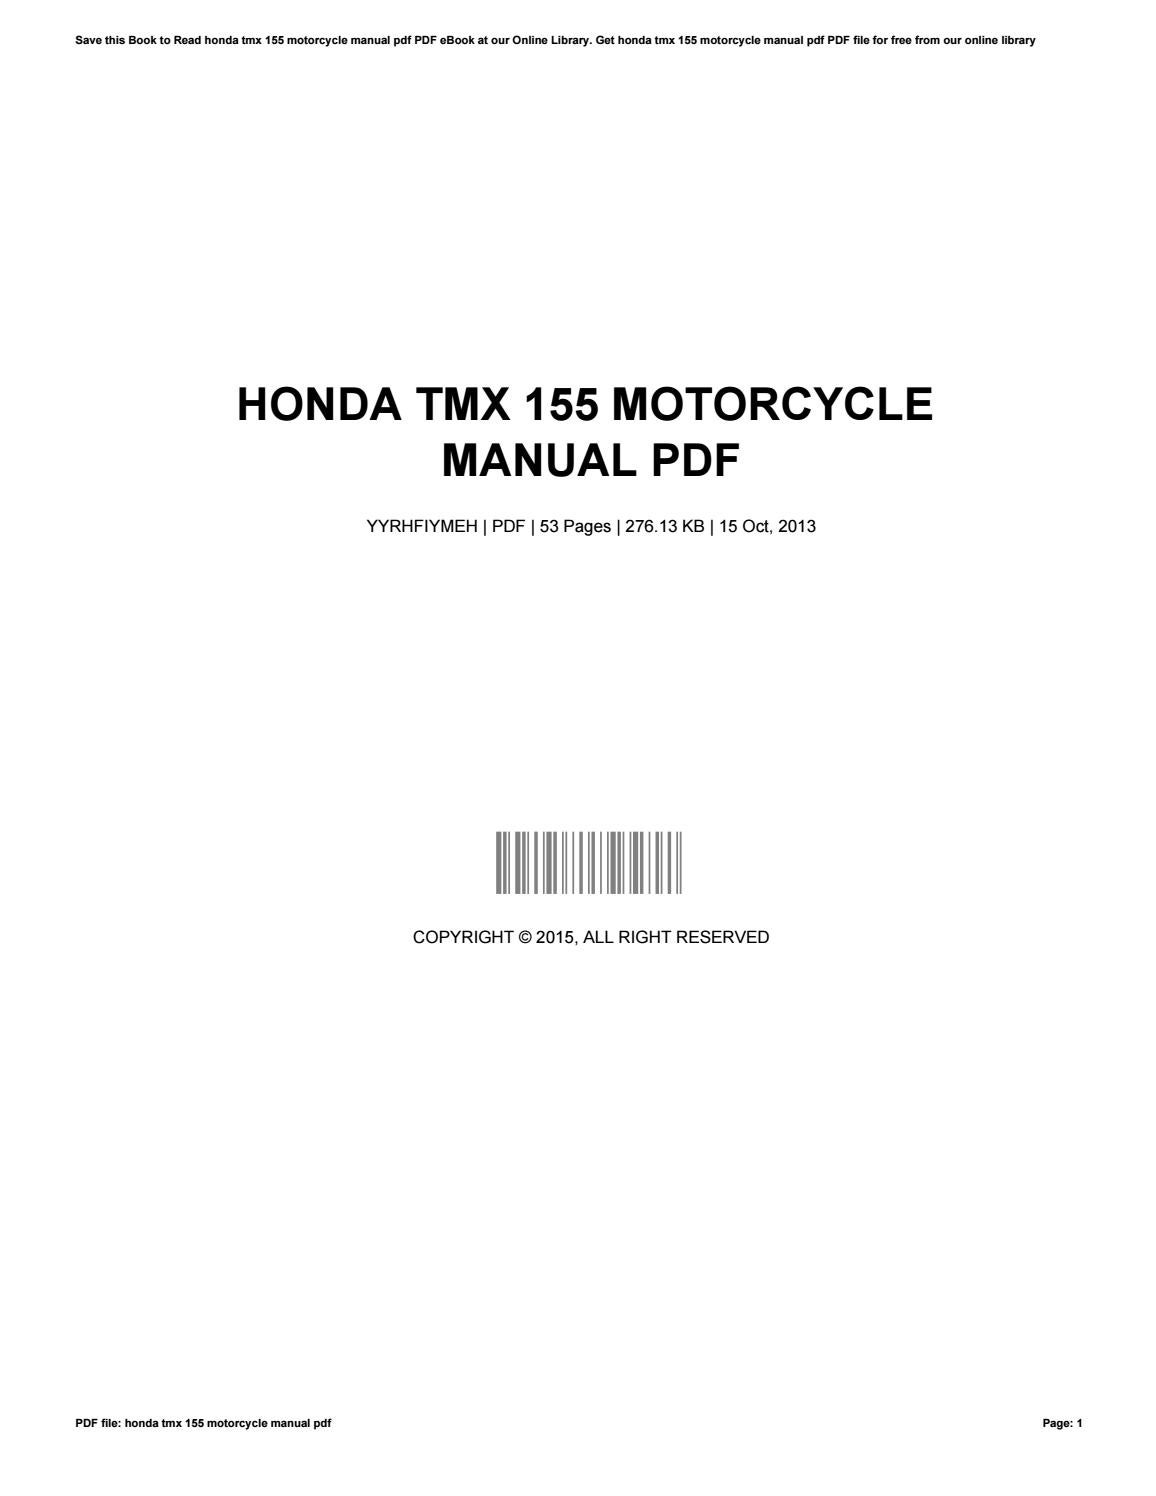 Honda Tmx 155 Motorcycle Manual Pdf By Dandickey2655 Issuu Free Wiring Diagrams For Motorcycles